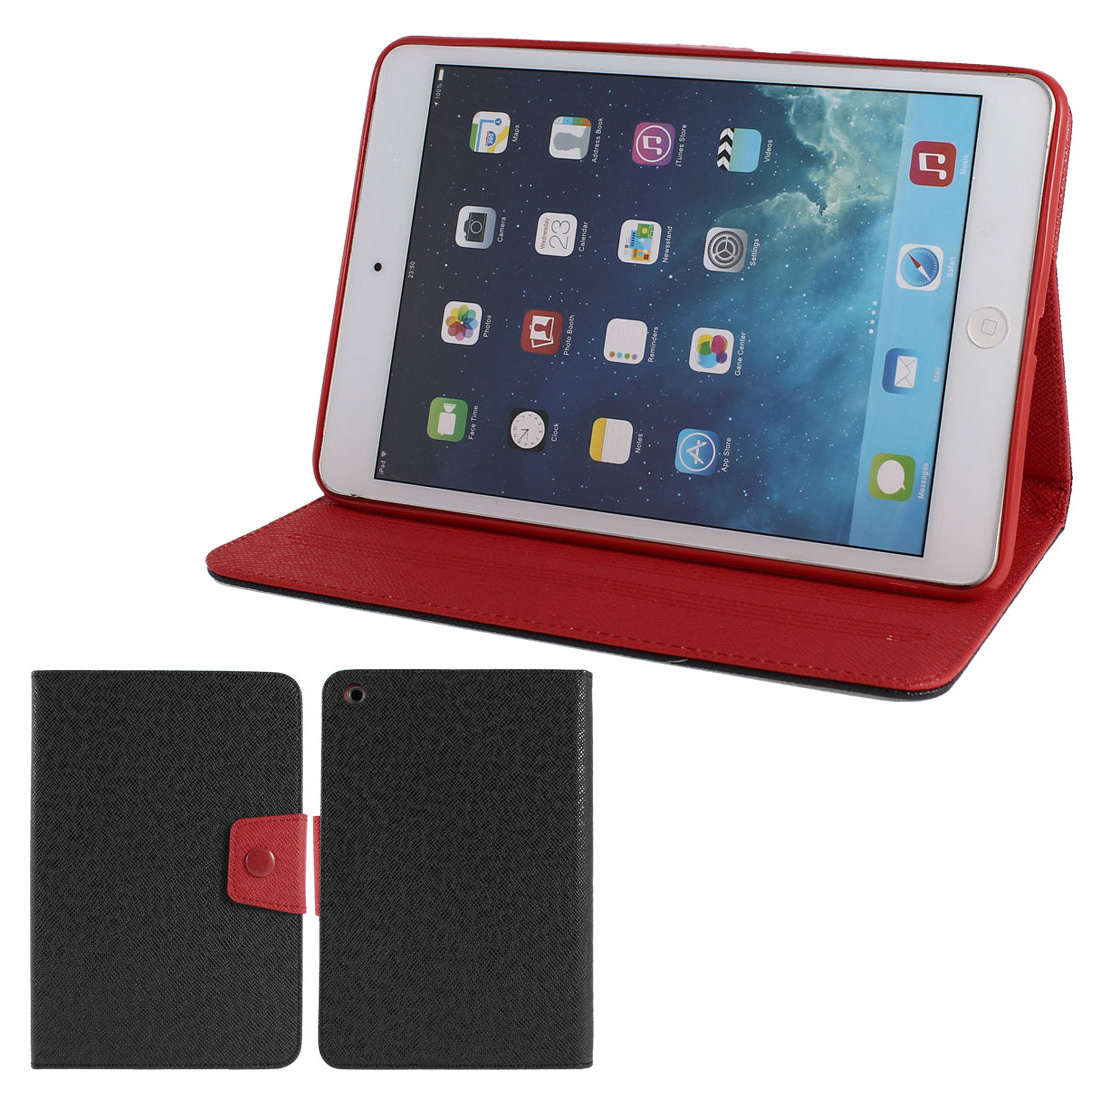 Black PU Leather Red Silicone Holder Folio Flip Stand Case Cover for iPad Mini